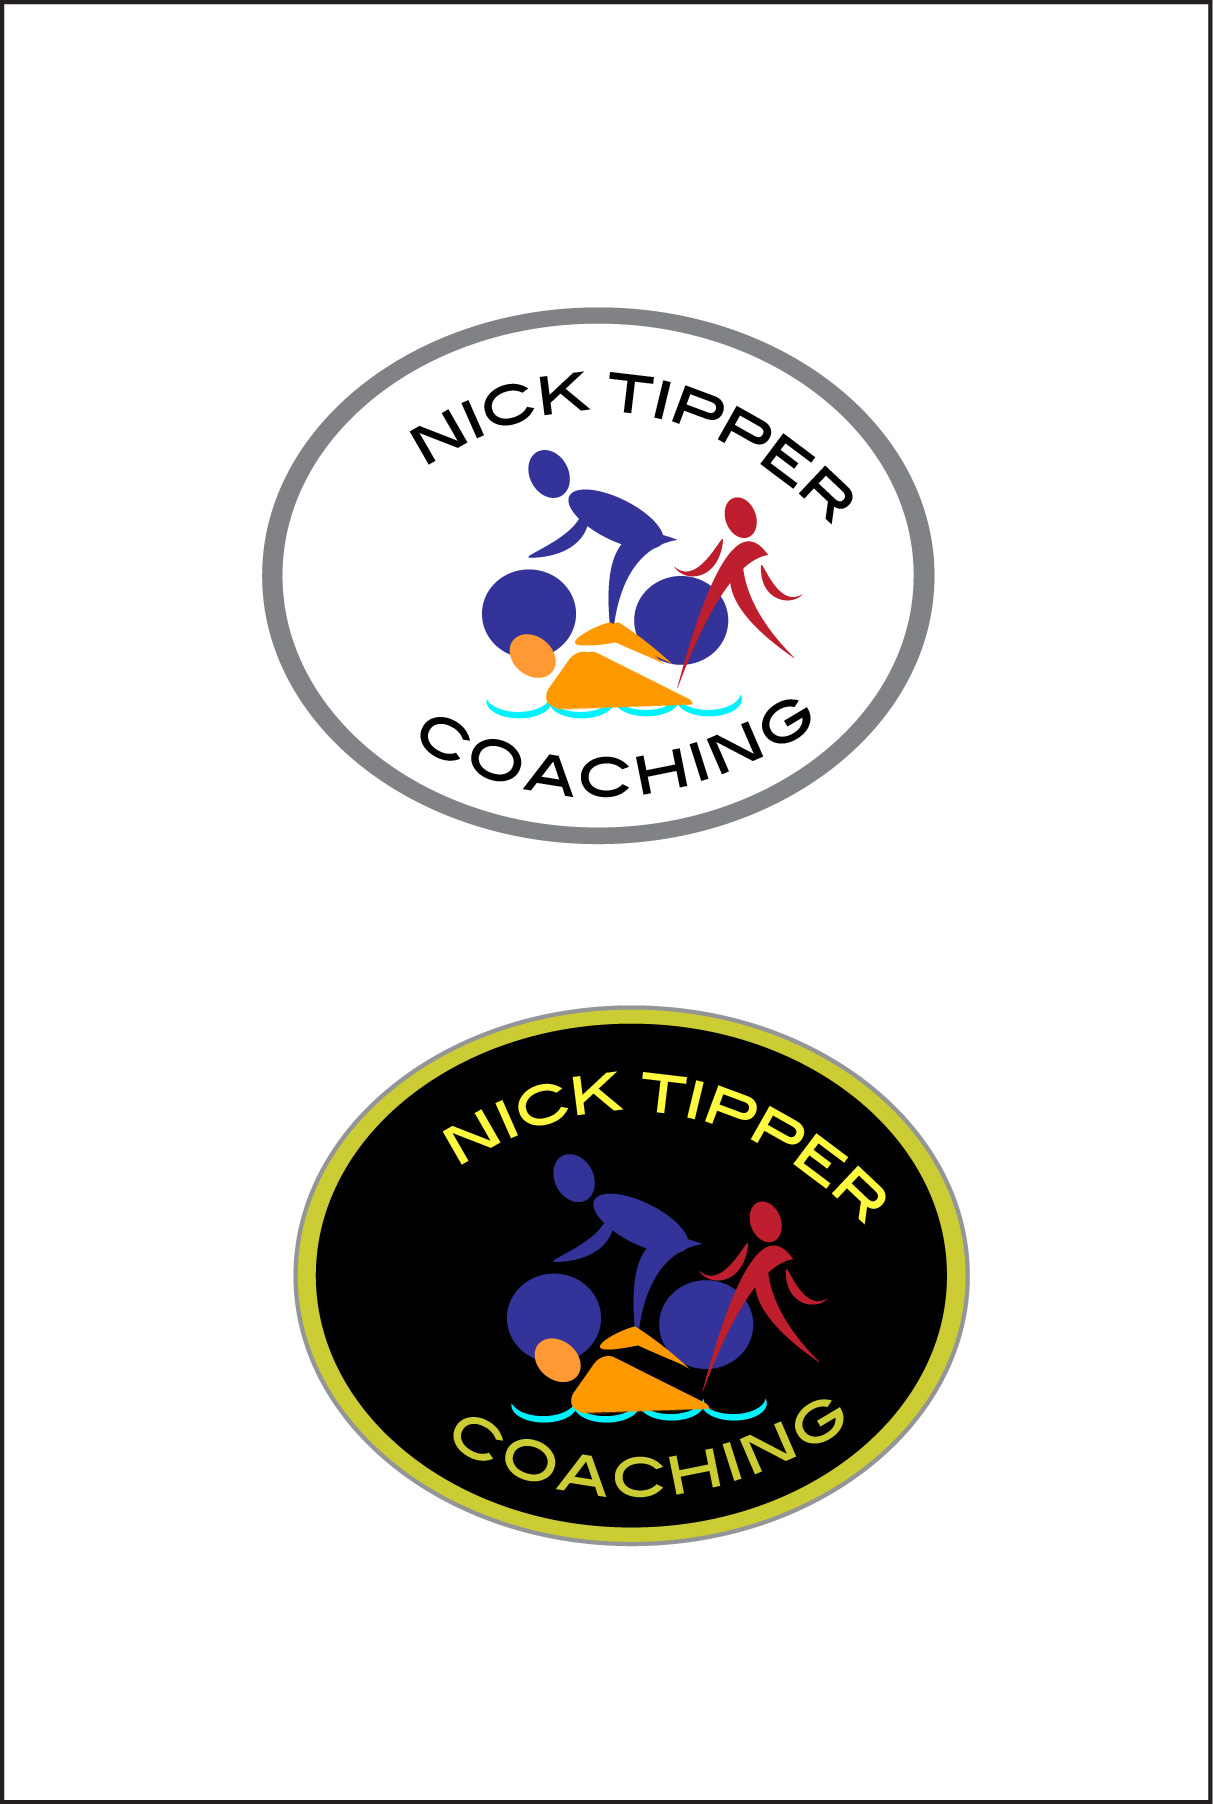 Logo Design by Nancy Grant - Entry No. 57 in the Logo Design Contest Logo Design for Nick Tipper Coaching.